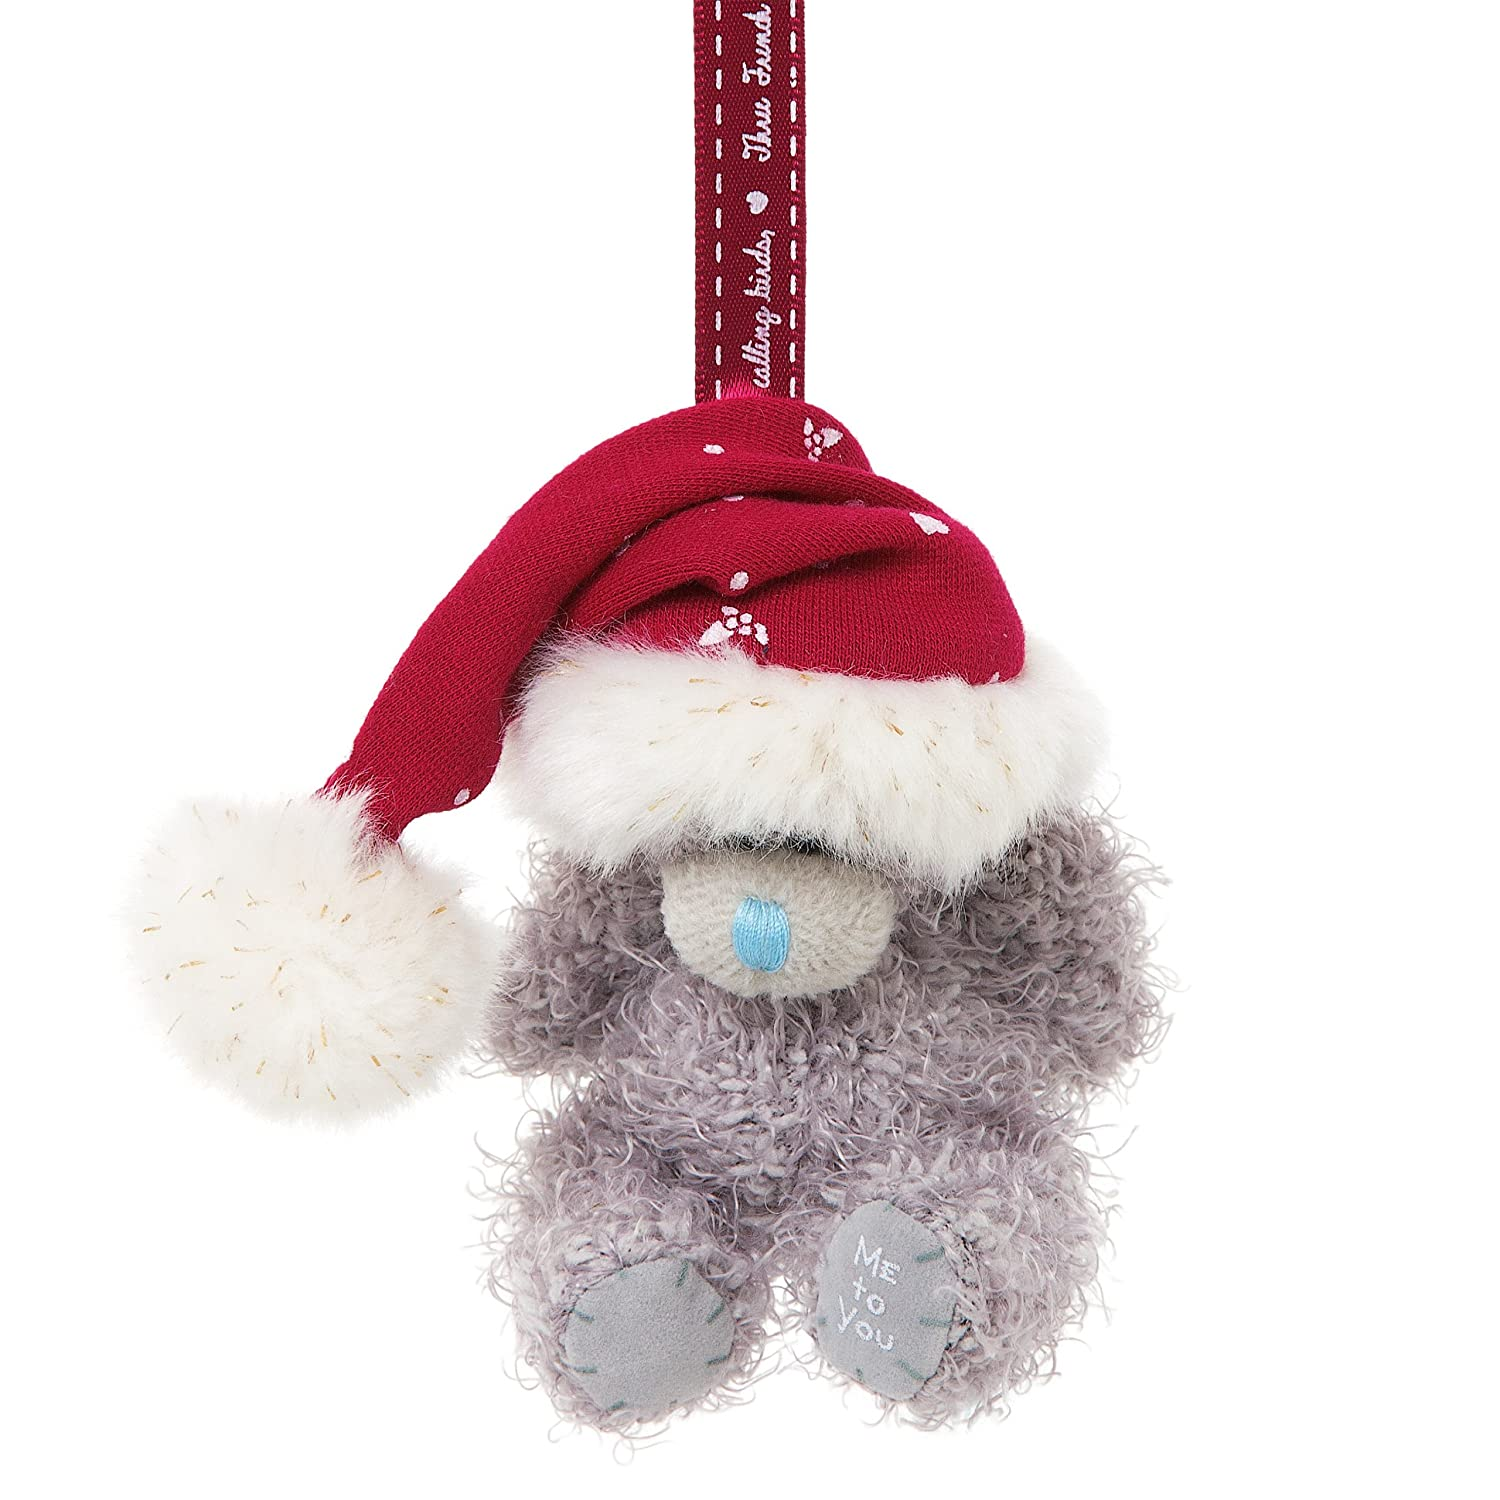 Christmas Tree Decorated With Teddy Bears Christmas Tree Decoration